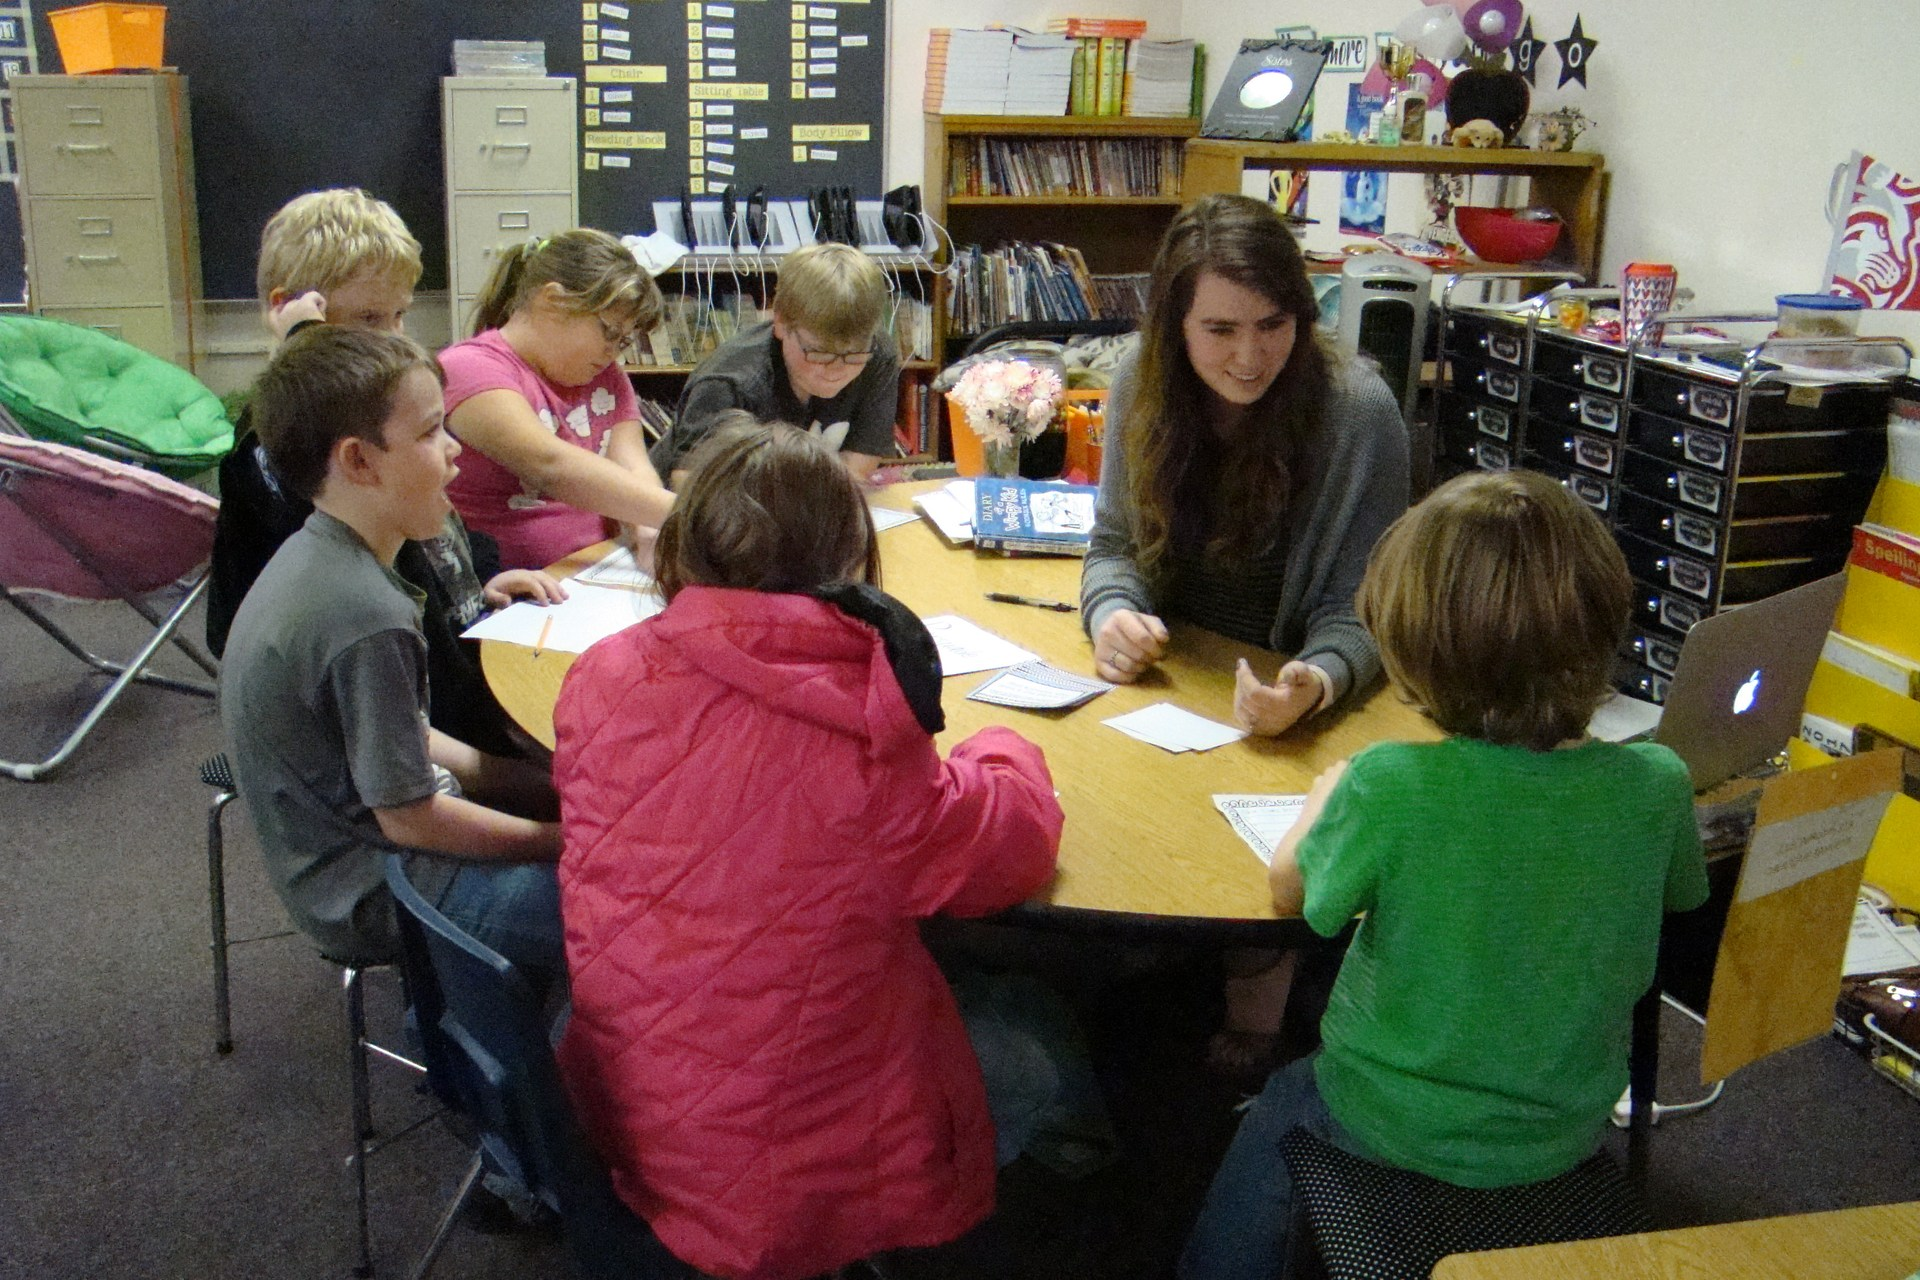 Teacher working with students.